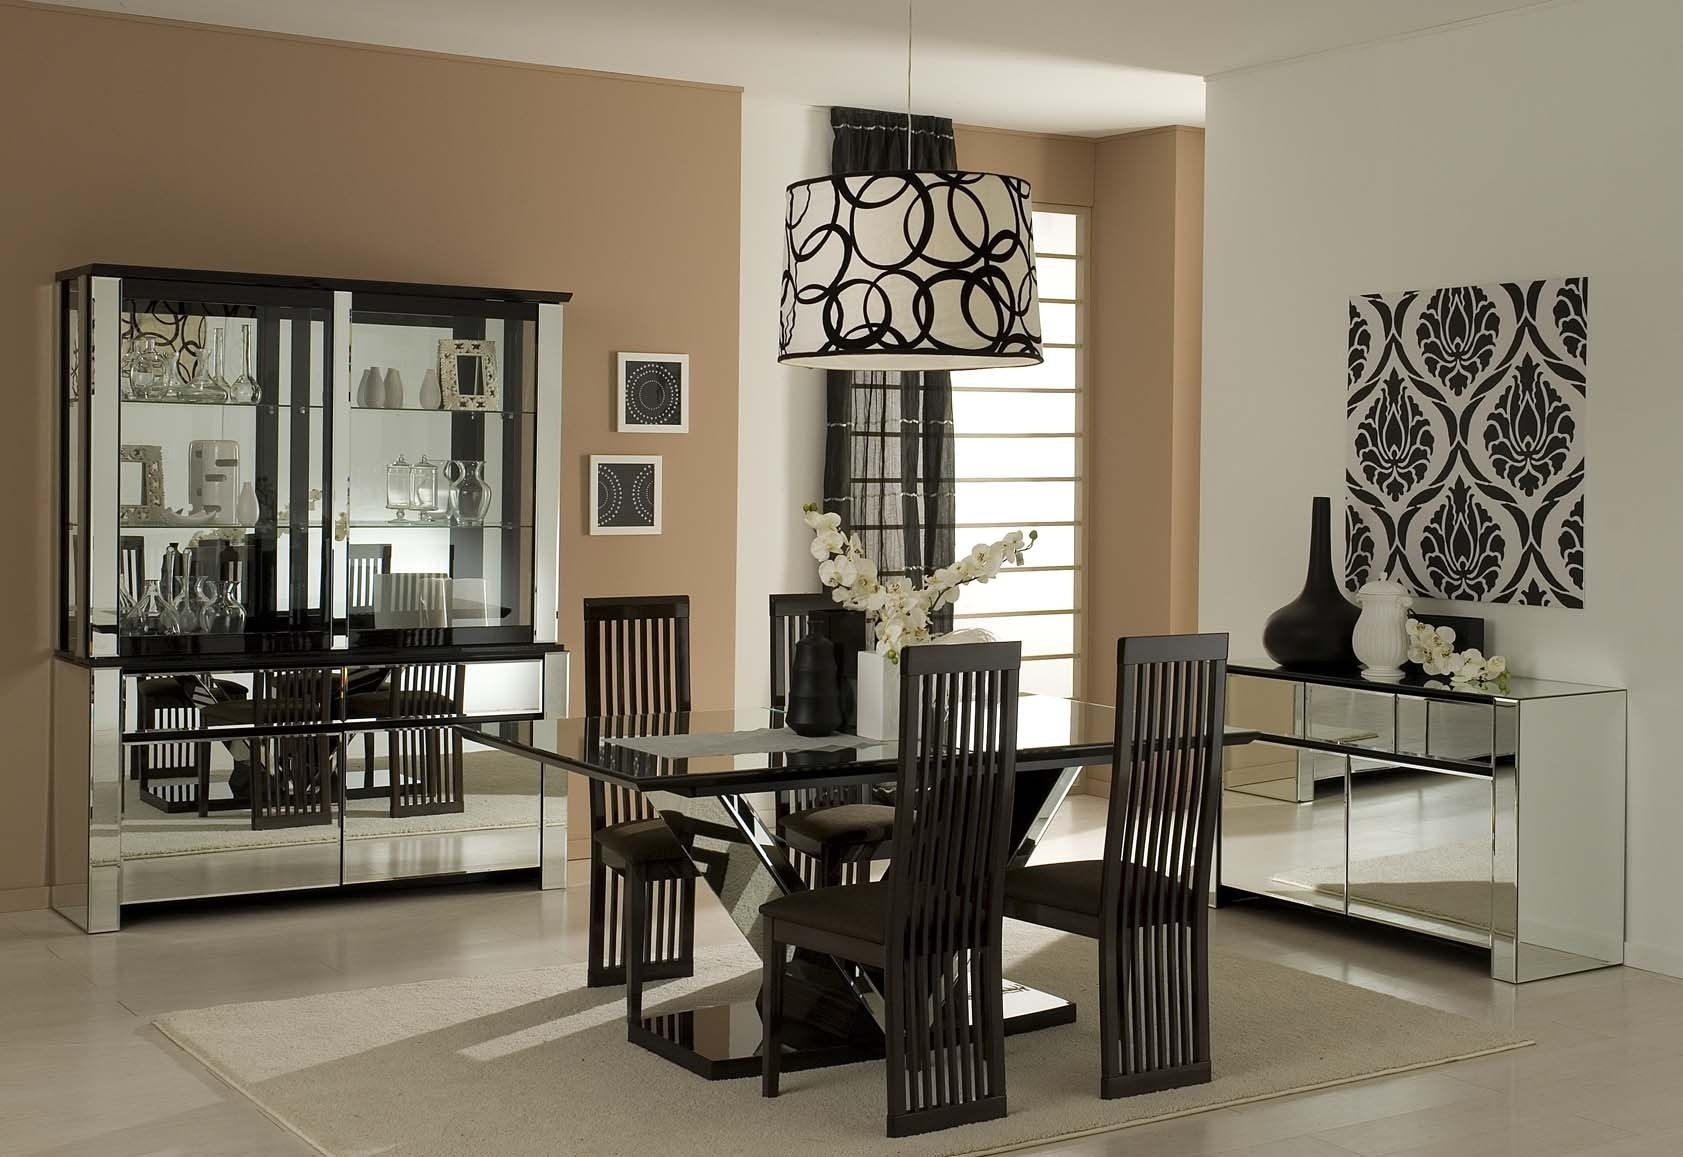 10 Amazing Dining Room Decorating Ideas On A Budget dining room decorating ideas on a budgetneutral interior wall 2020